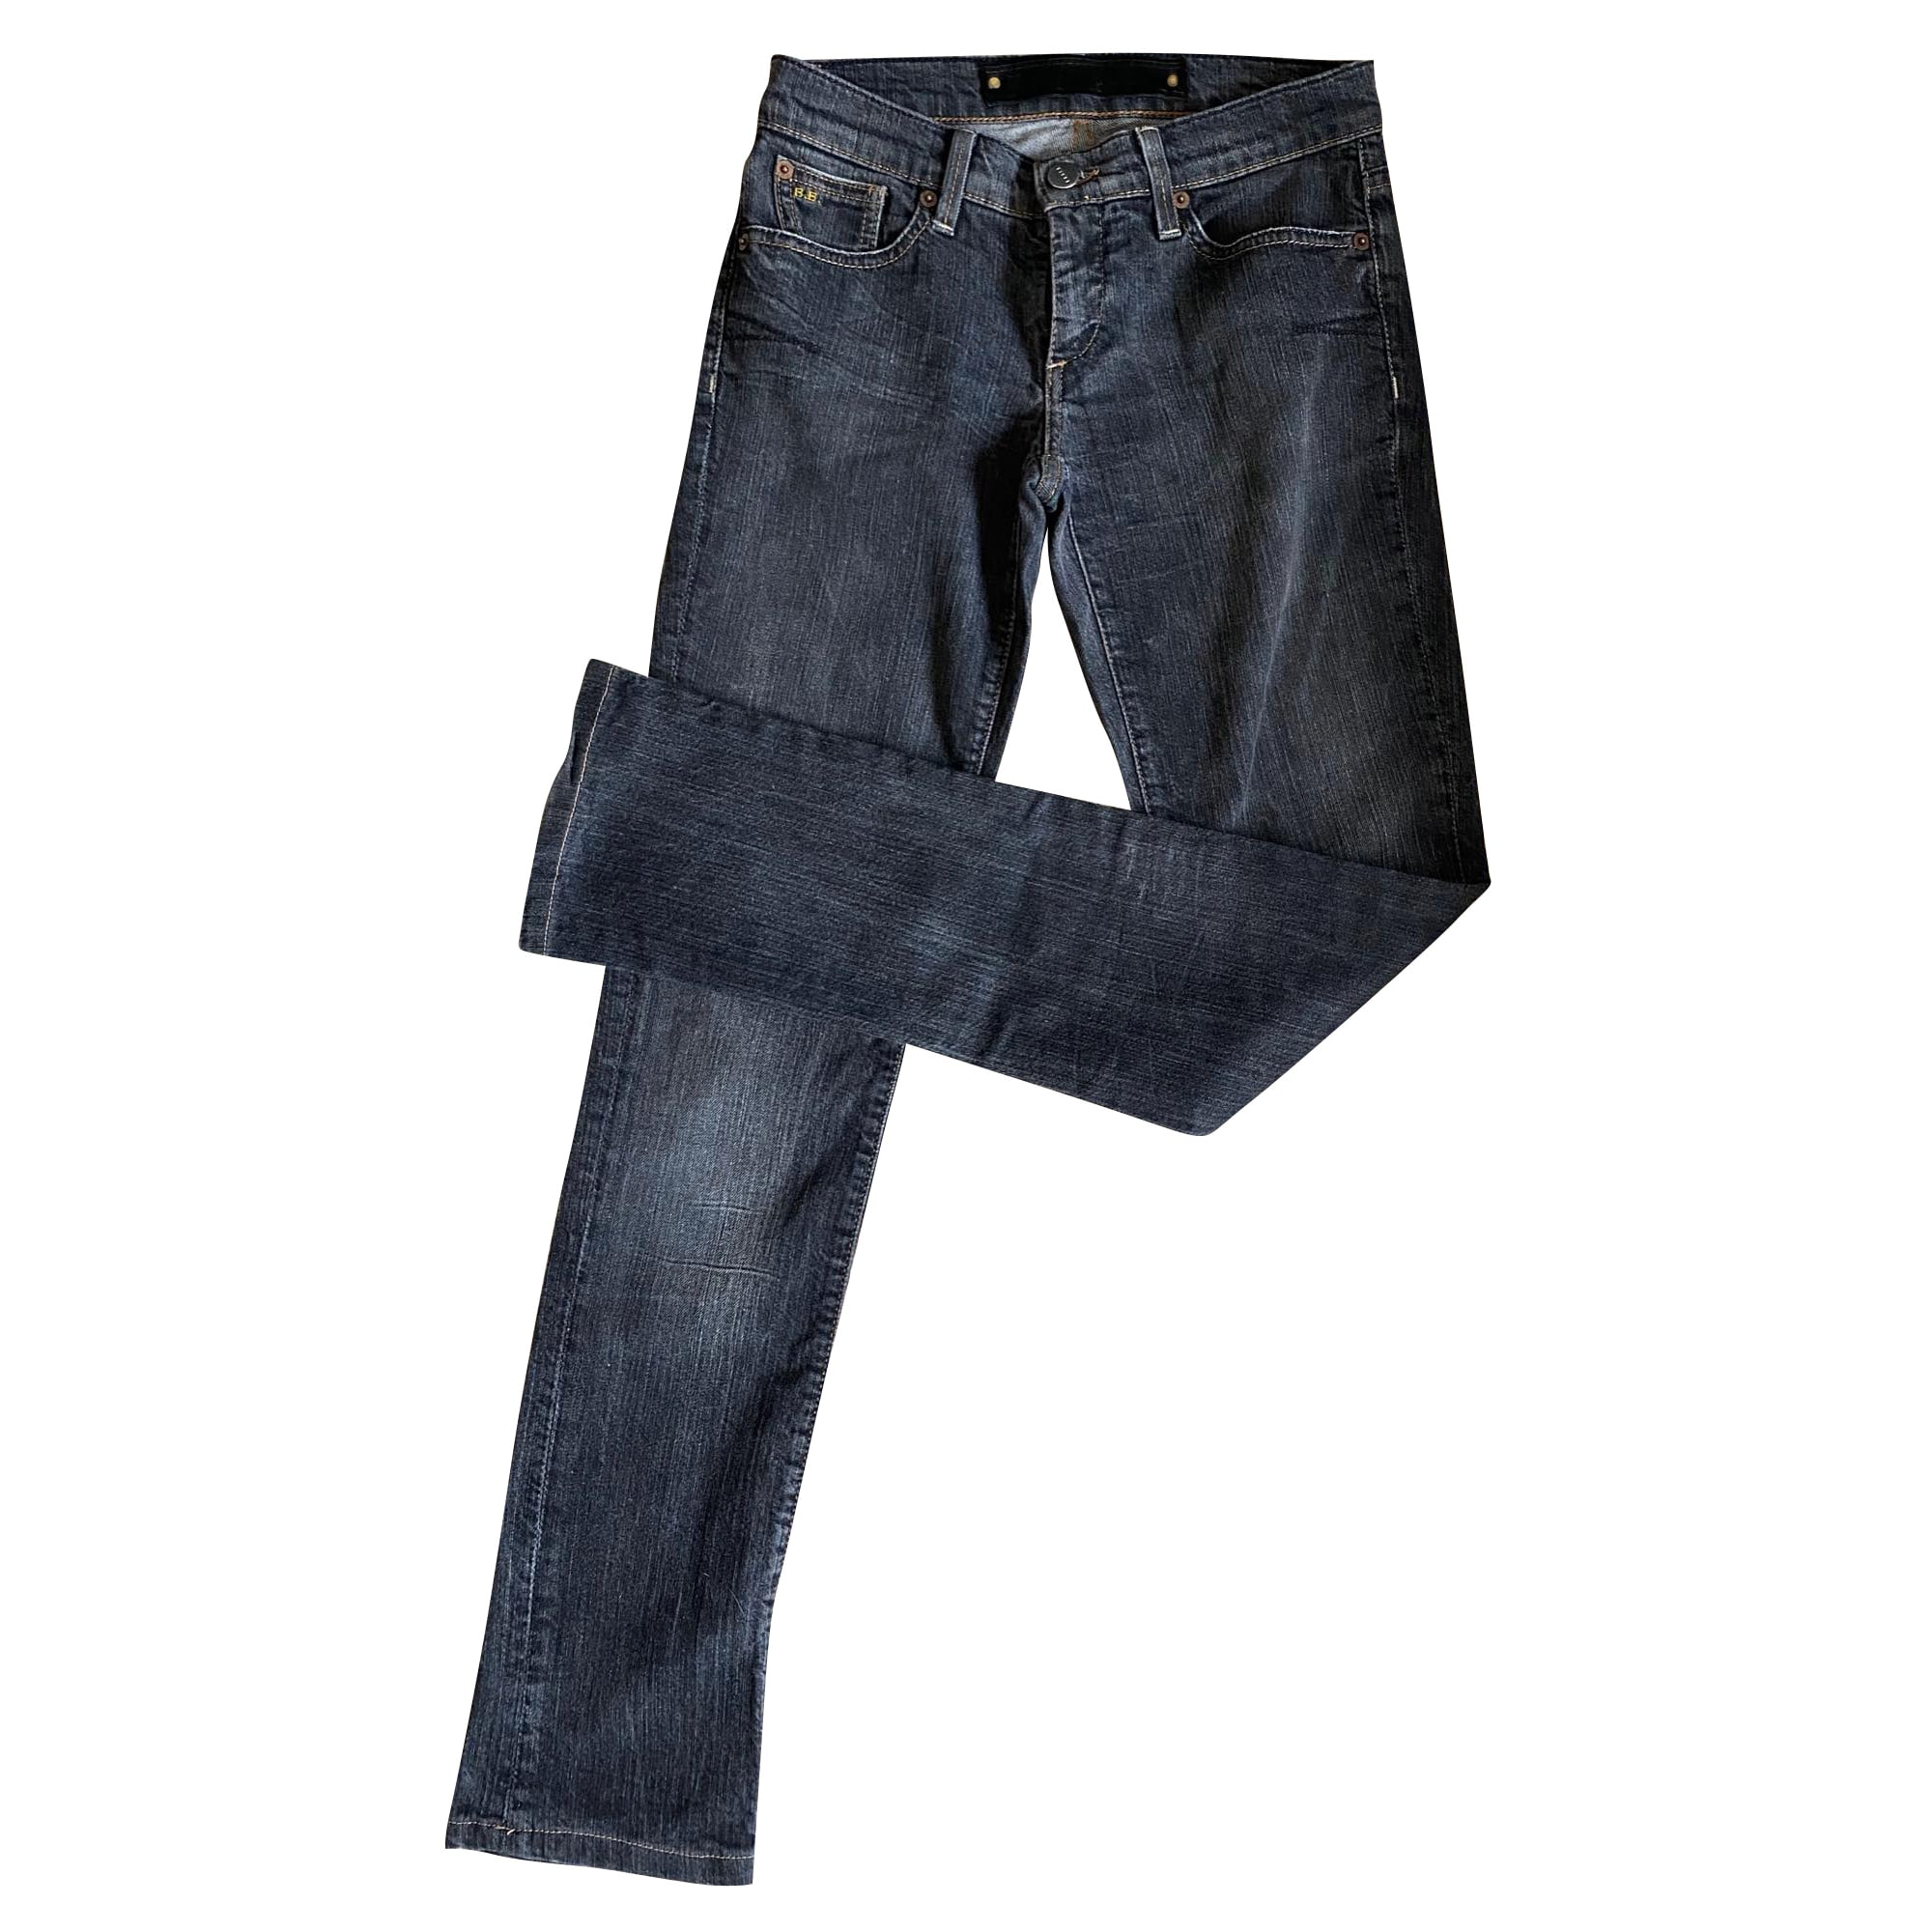 Jeans droit BARBARA BUI Gris, anthracite